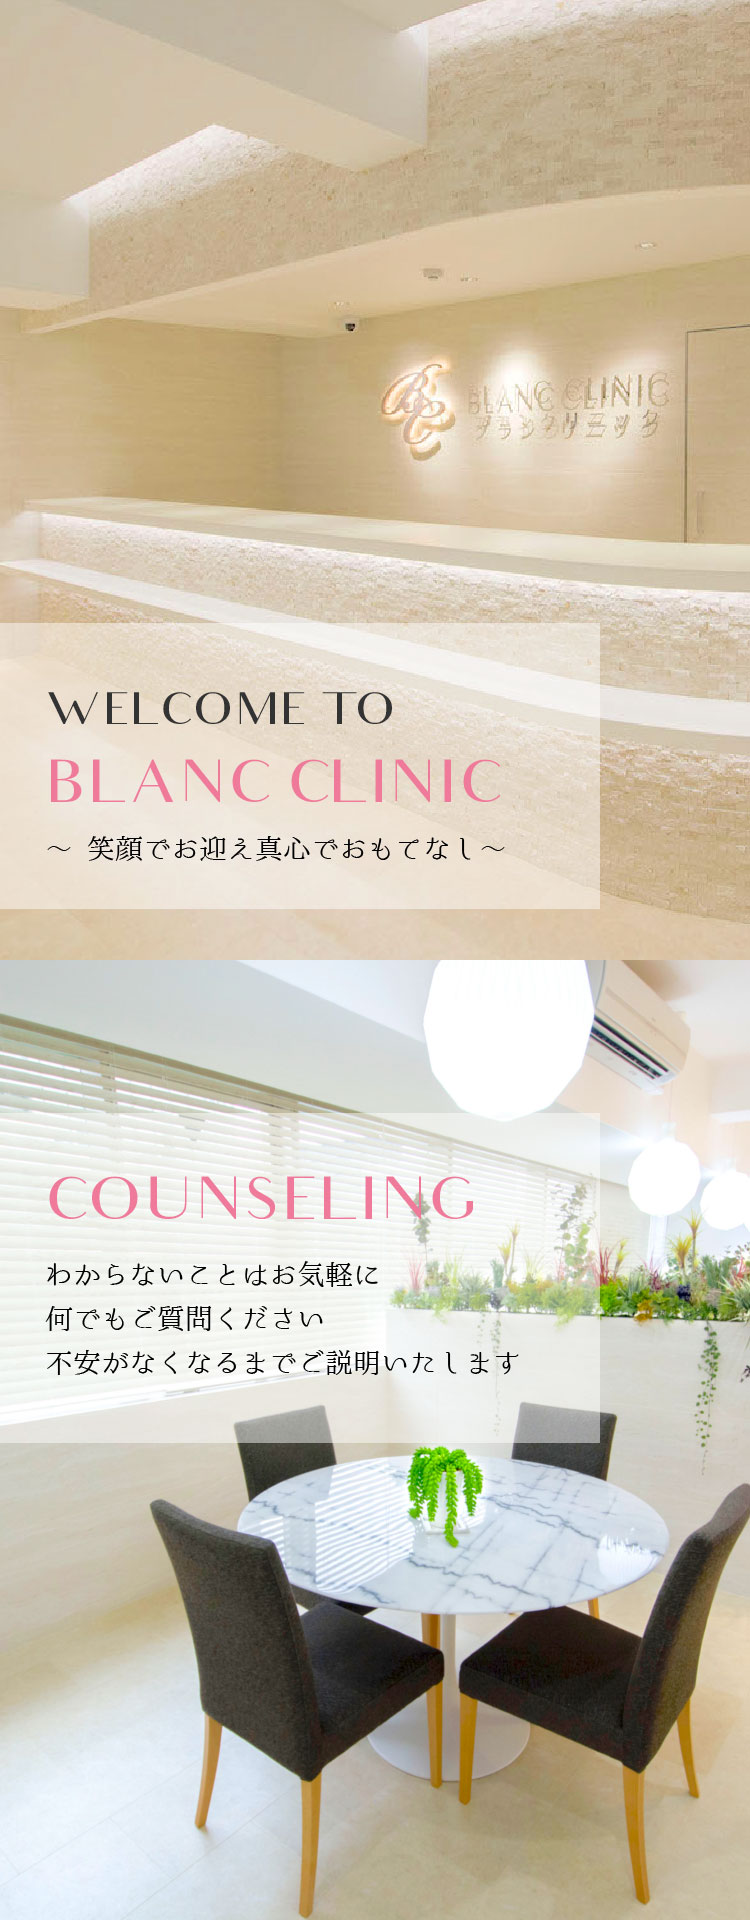 WELCOME TO BLANC CLINIC